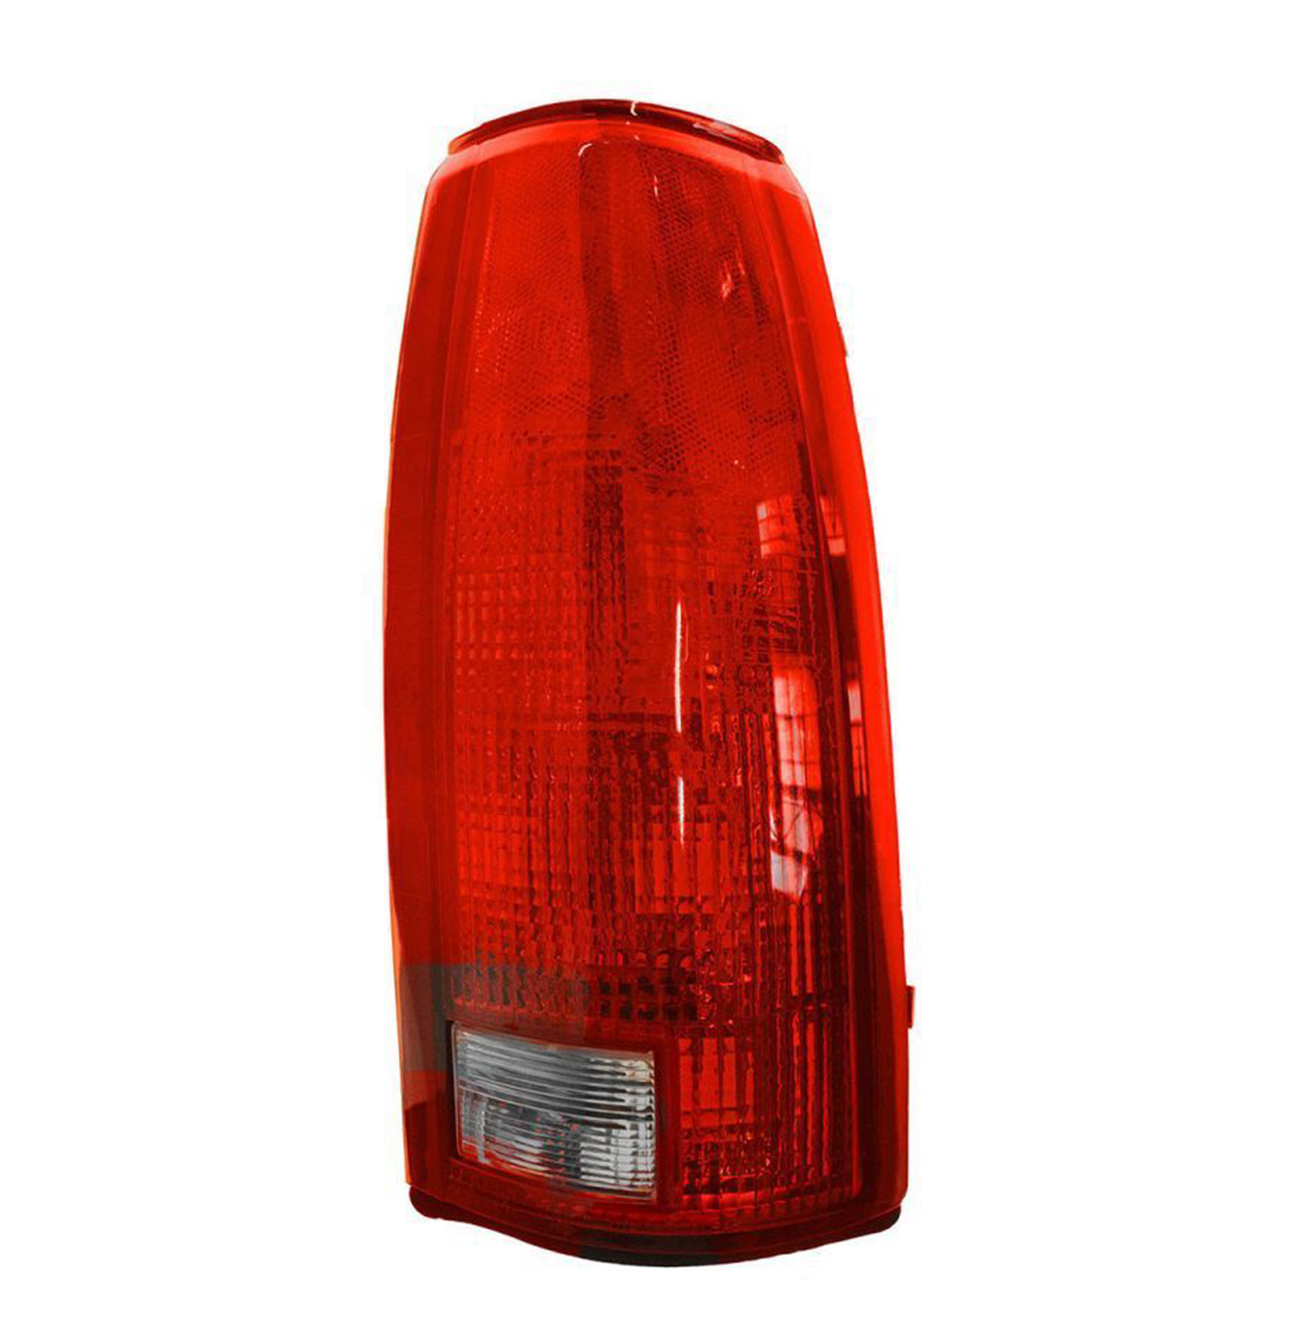 Newer Vehicle Tail Light Lenses : New right tail light lens and housing fit gmc yukon gt sle